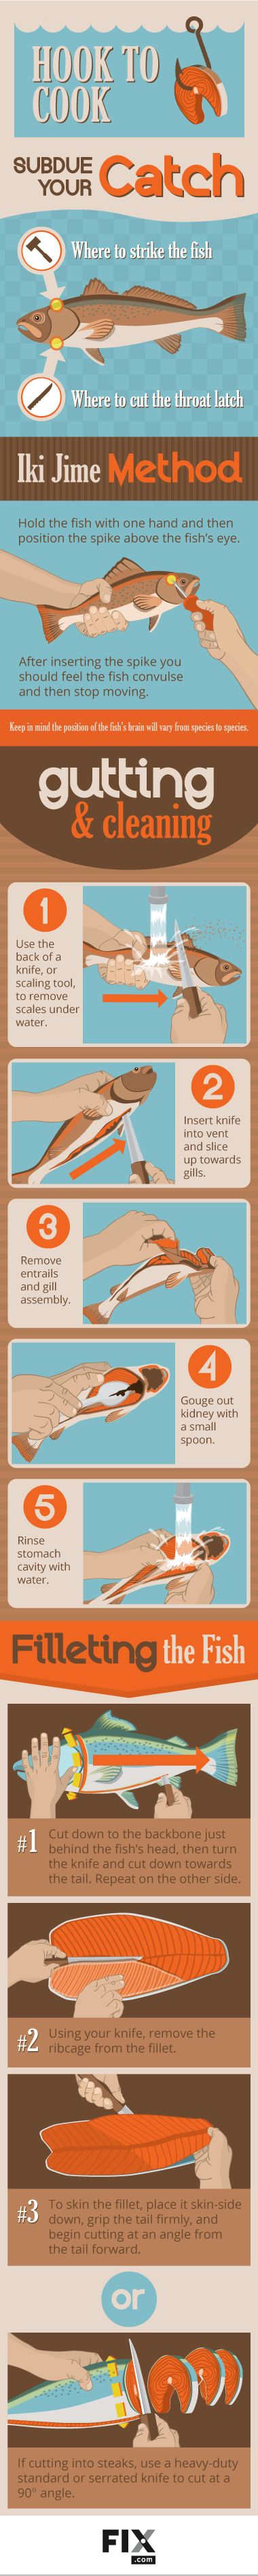 You've caught a fish! Now what? Read on for tips on preparing your catch for the grill.